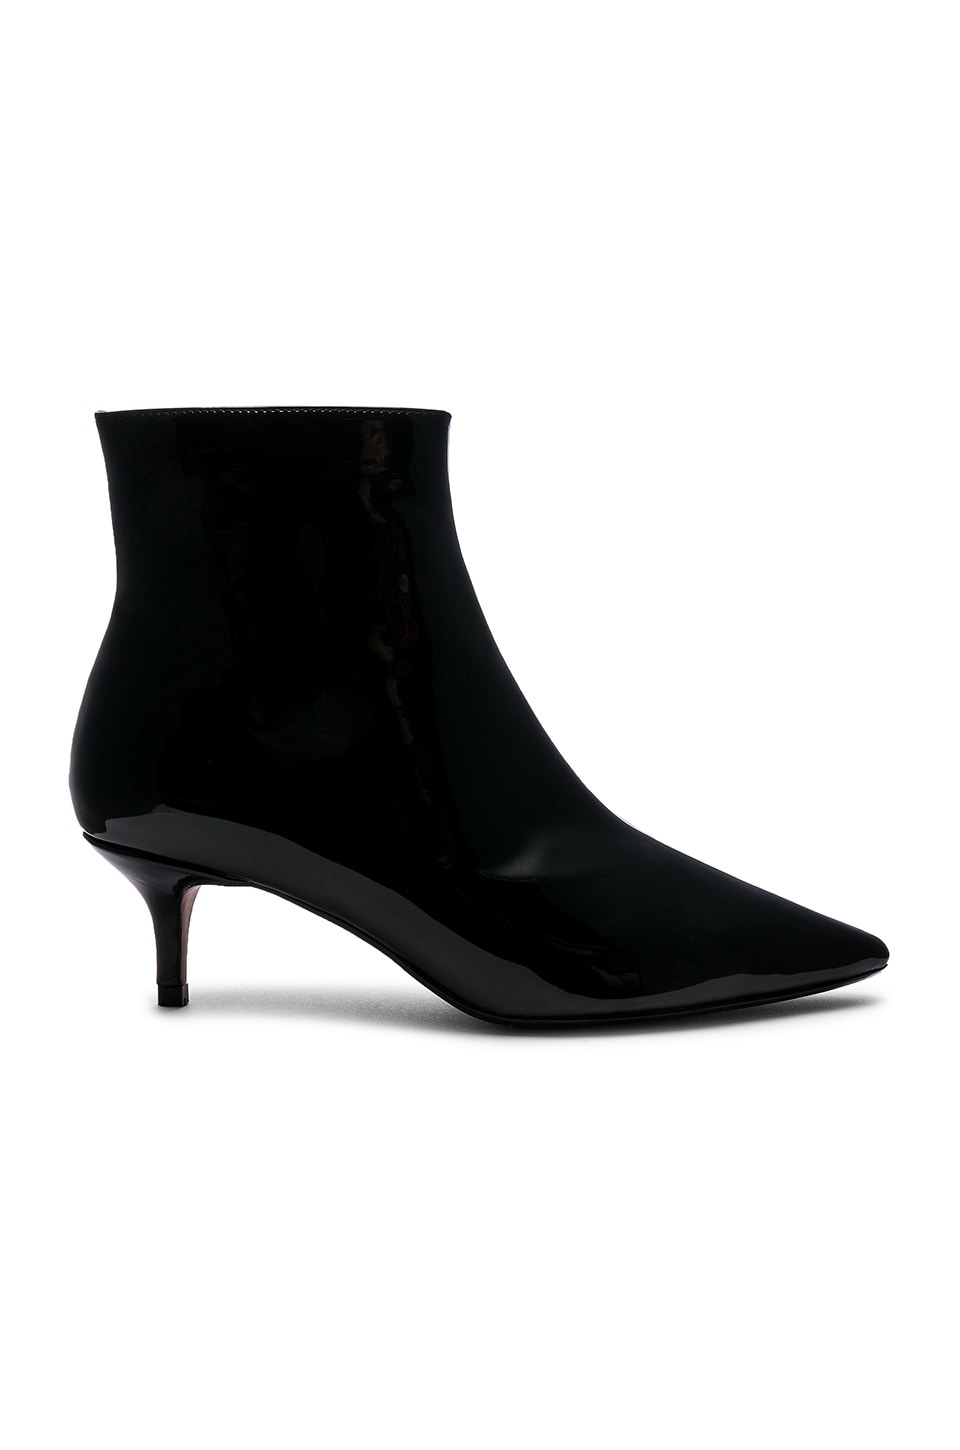 RAYE Juneau Bootie in Black